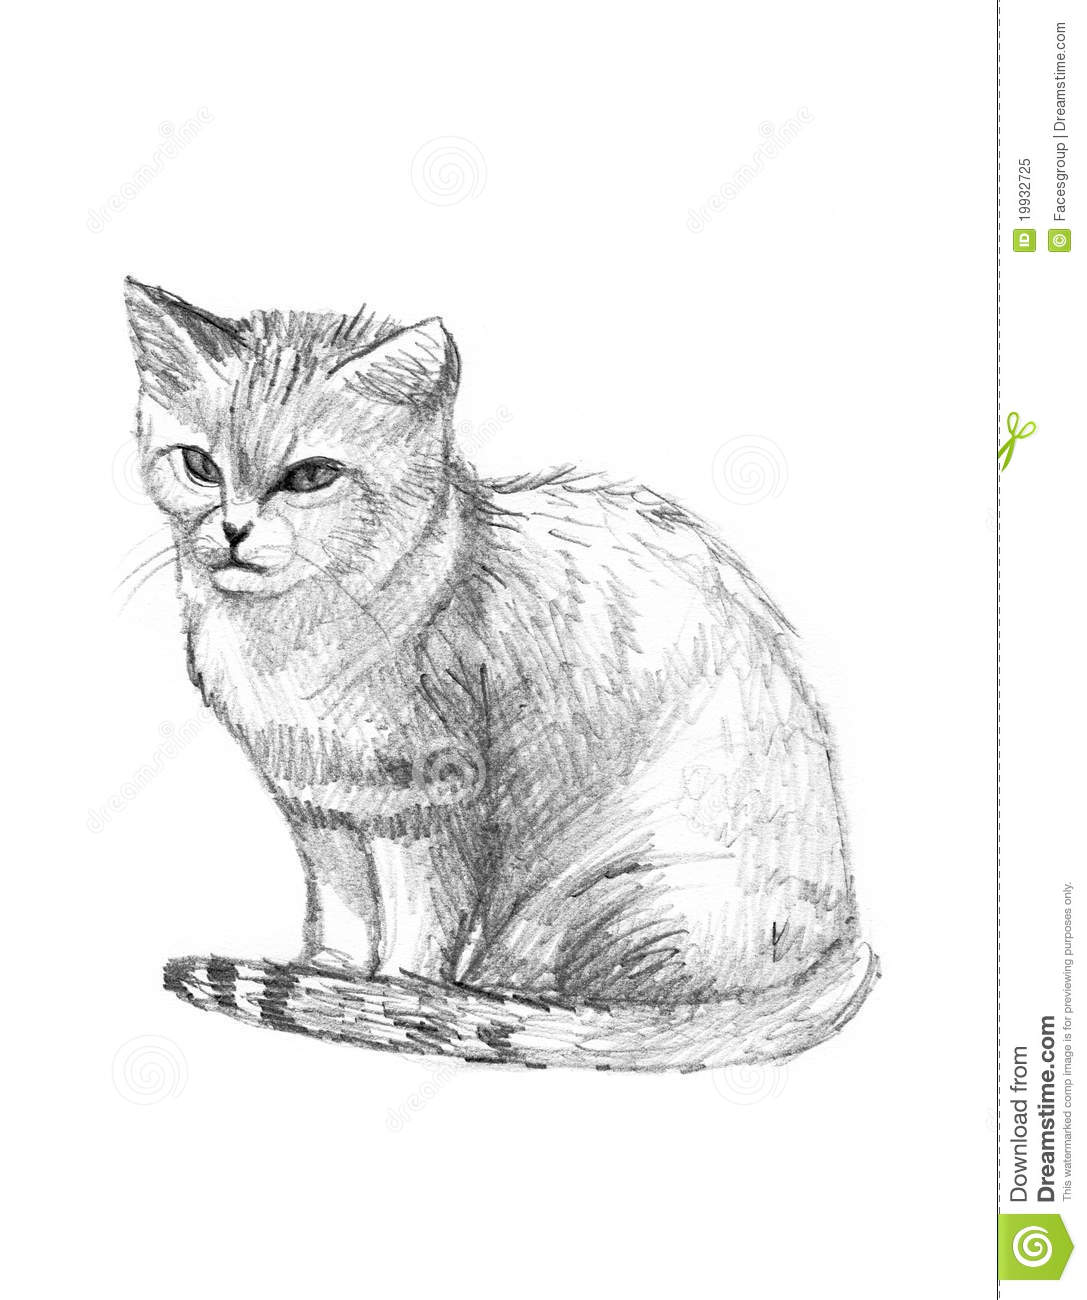 Sand Cat Drawing Sketch Royalty Free Stock Photo